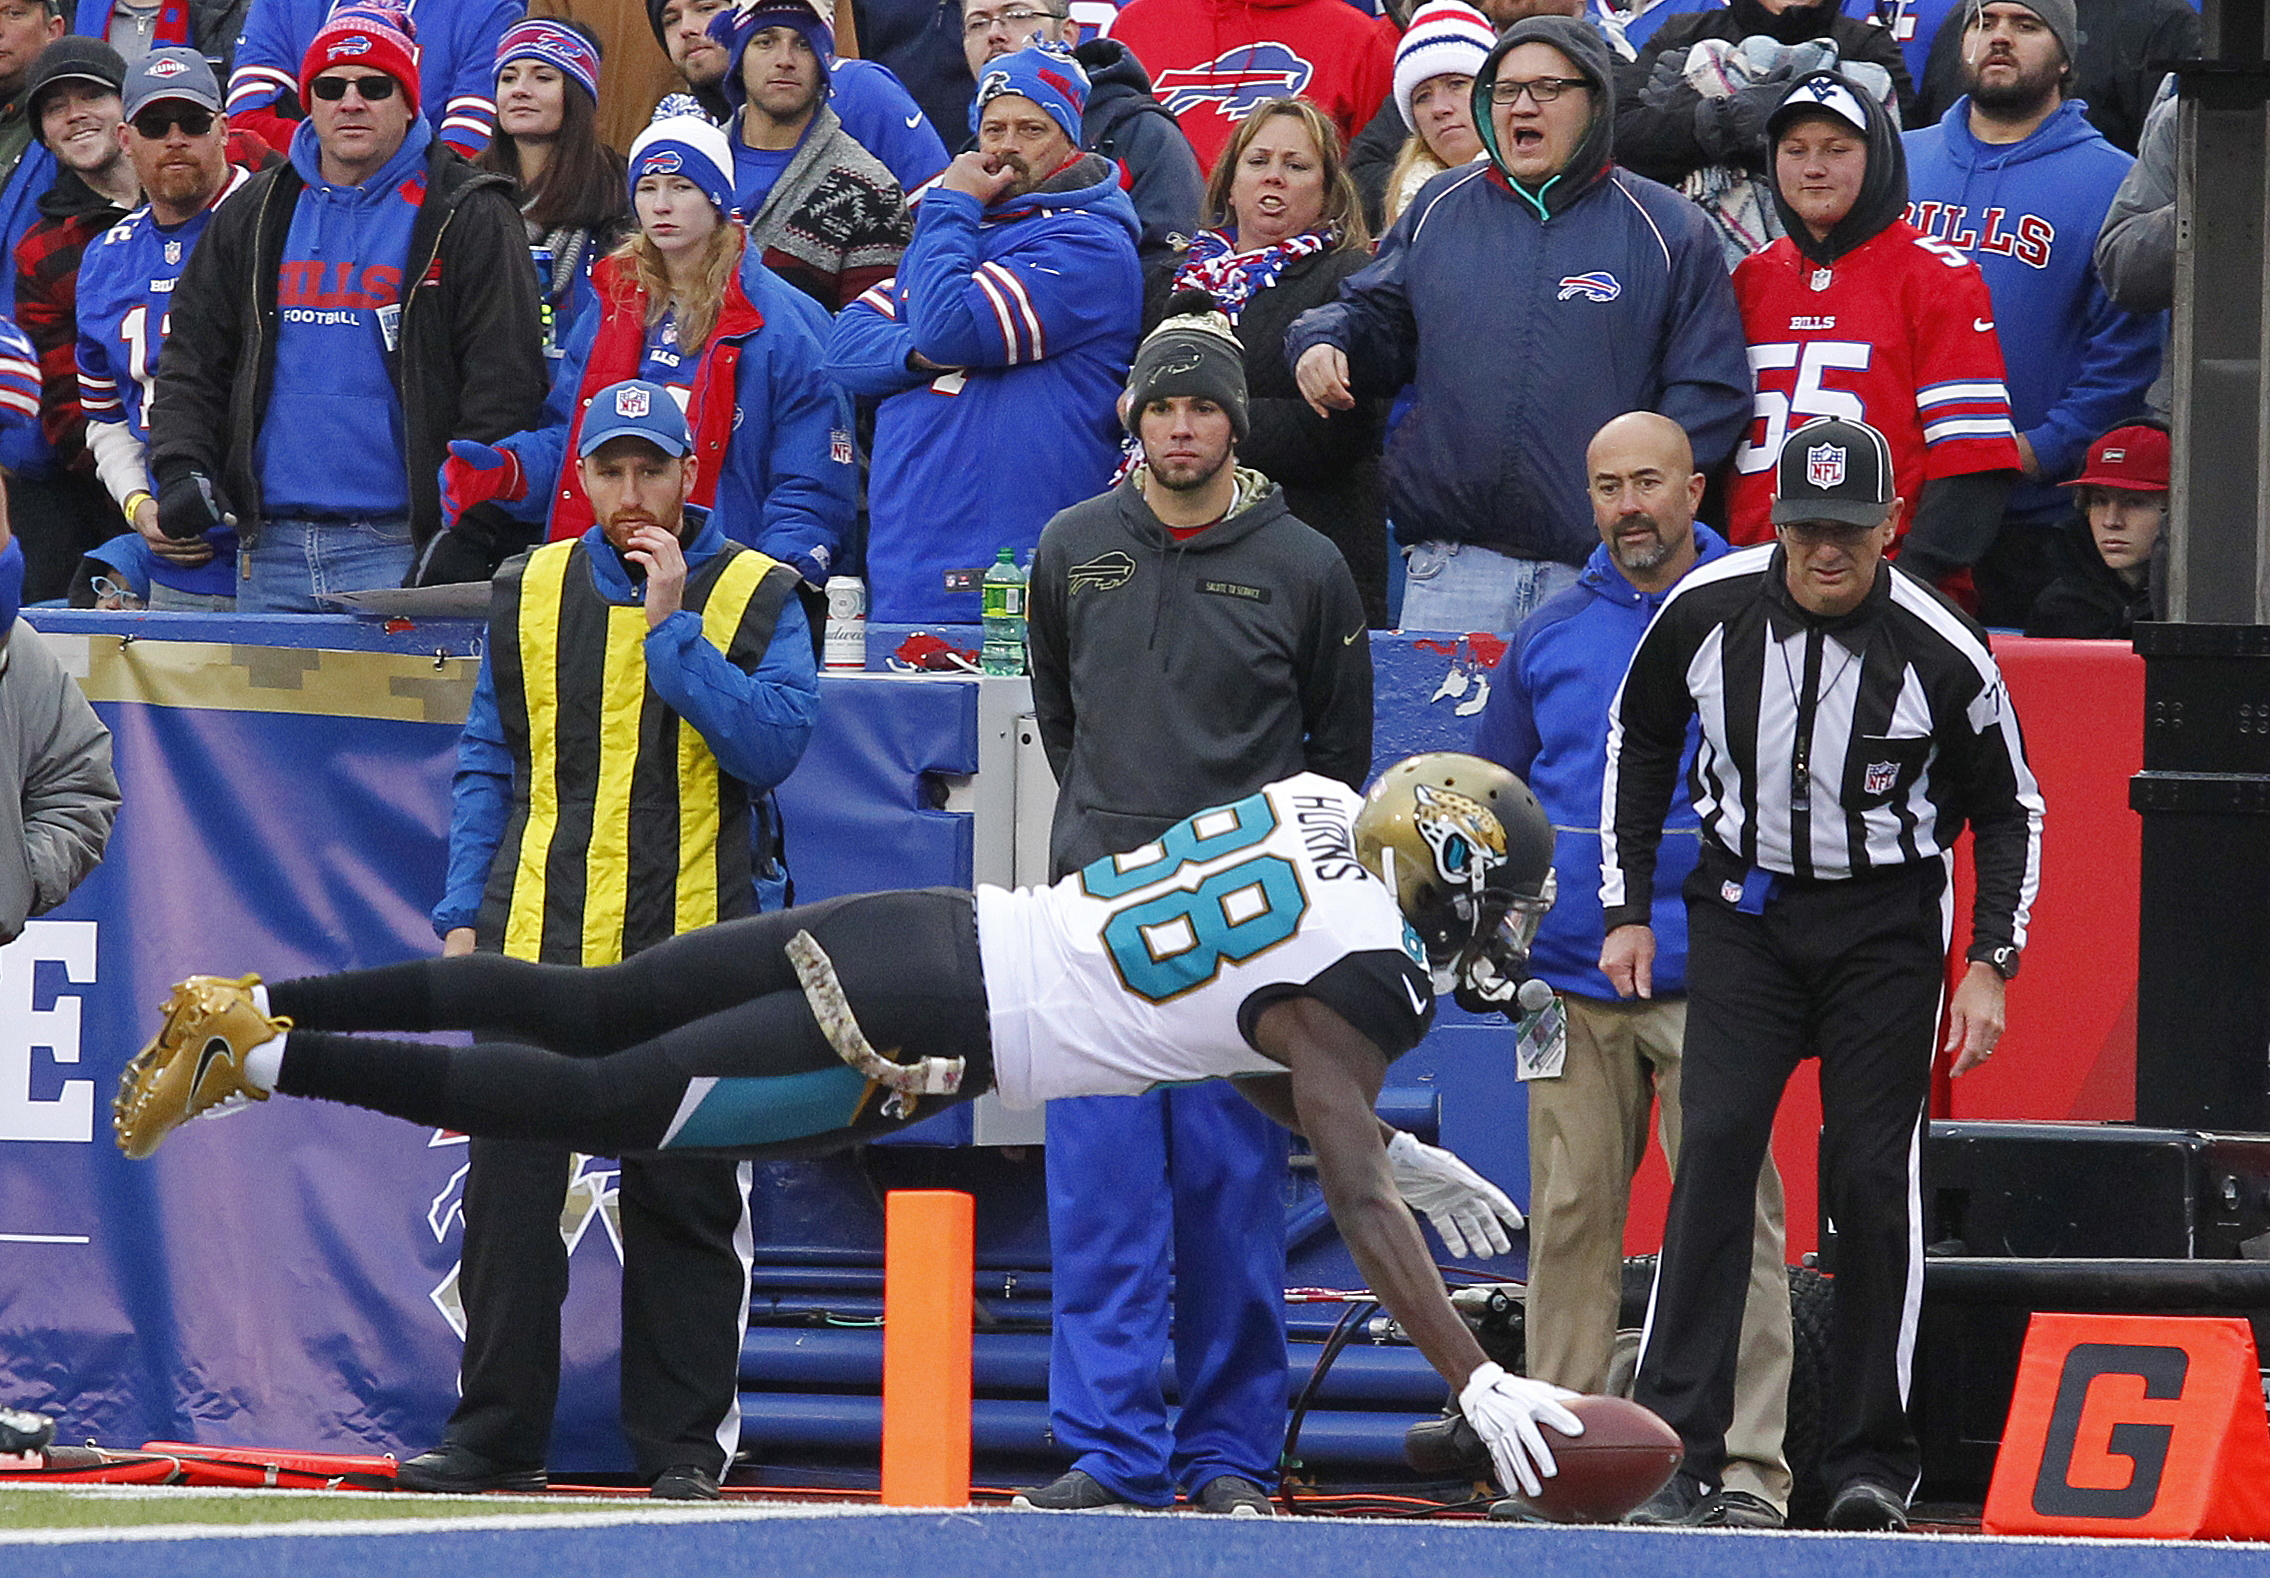 Jacksonville Jaguars wide receiver Allen Hurns (88) dives into the end zone for a touchdown during the second half of an NFL football game against the Buffalo Bills Sunday, Nov. 27, 2016, in Orchard Park, N.Y. (AP Photo/Bill Wippert)